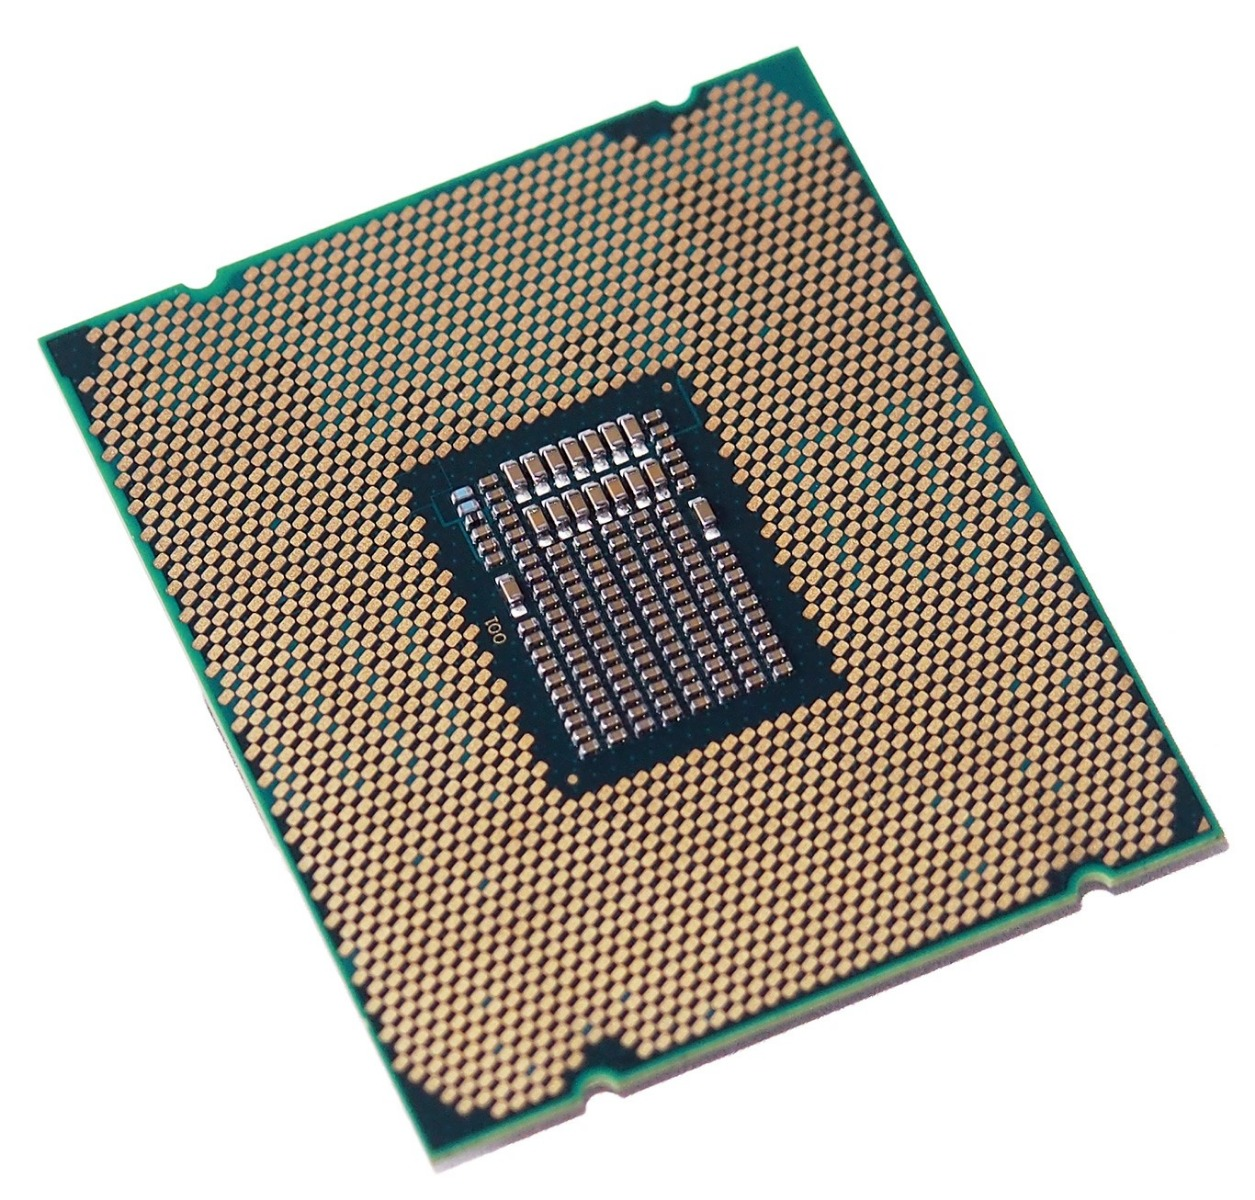 Intel Core i9-9980XE CPU Review: Supercharged, Many-Core Skylake-X